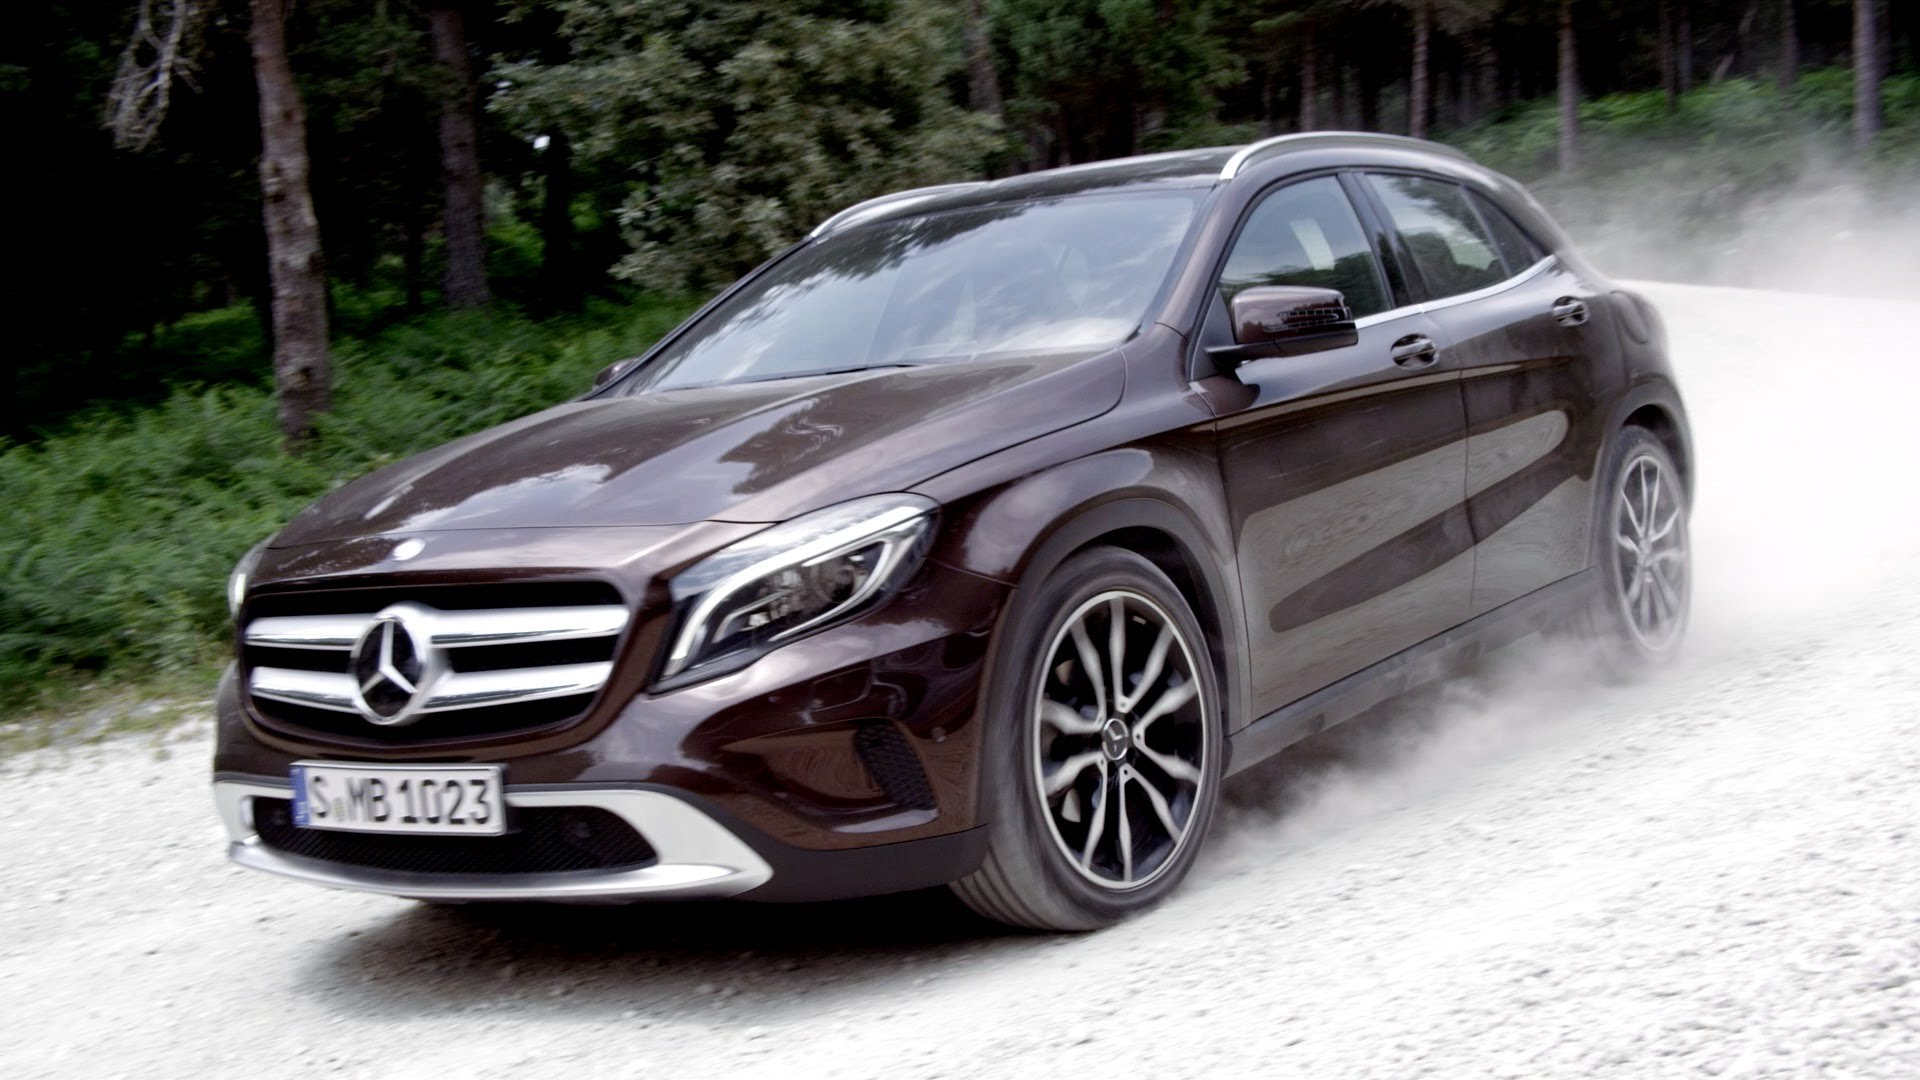 2015 mercedes benz gla mercedes benz for Mercedes benz 2015 gla